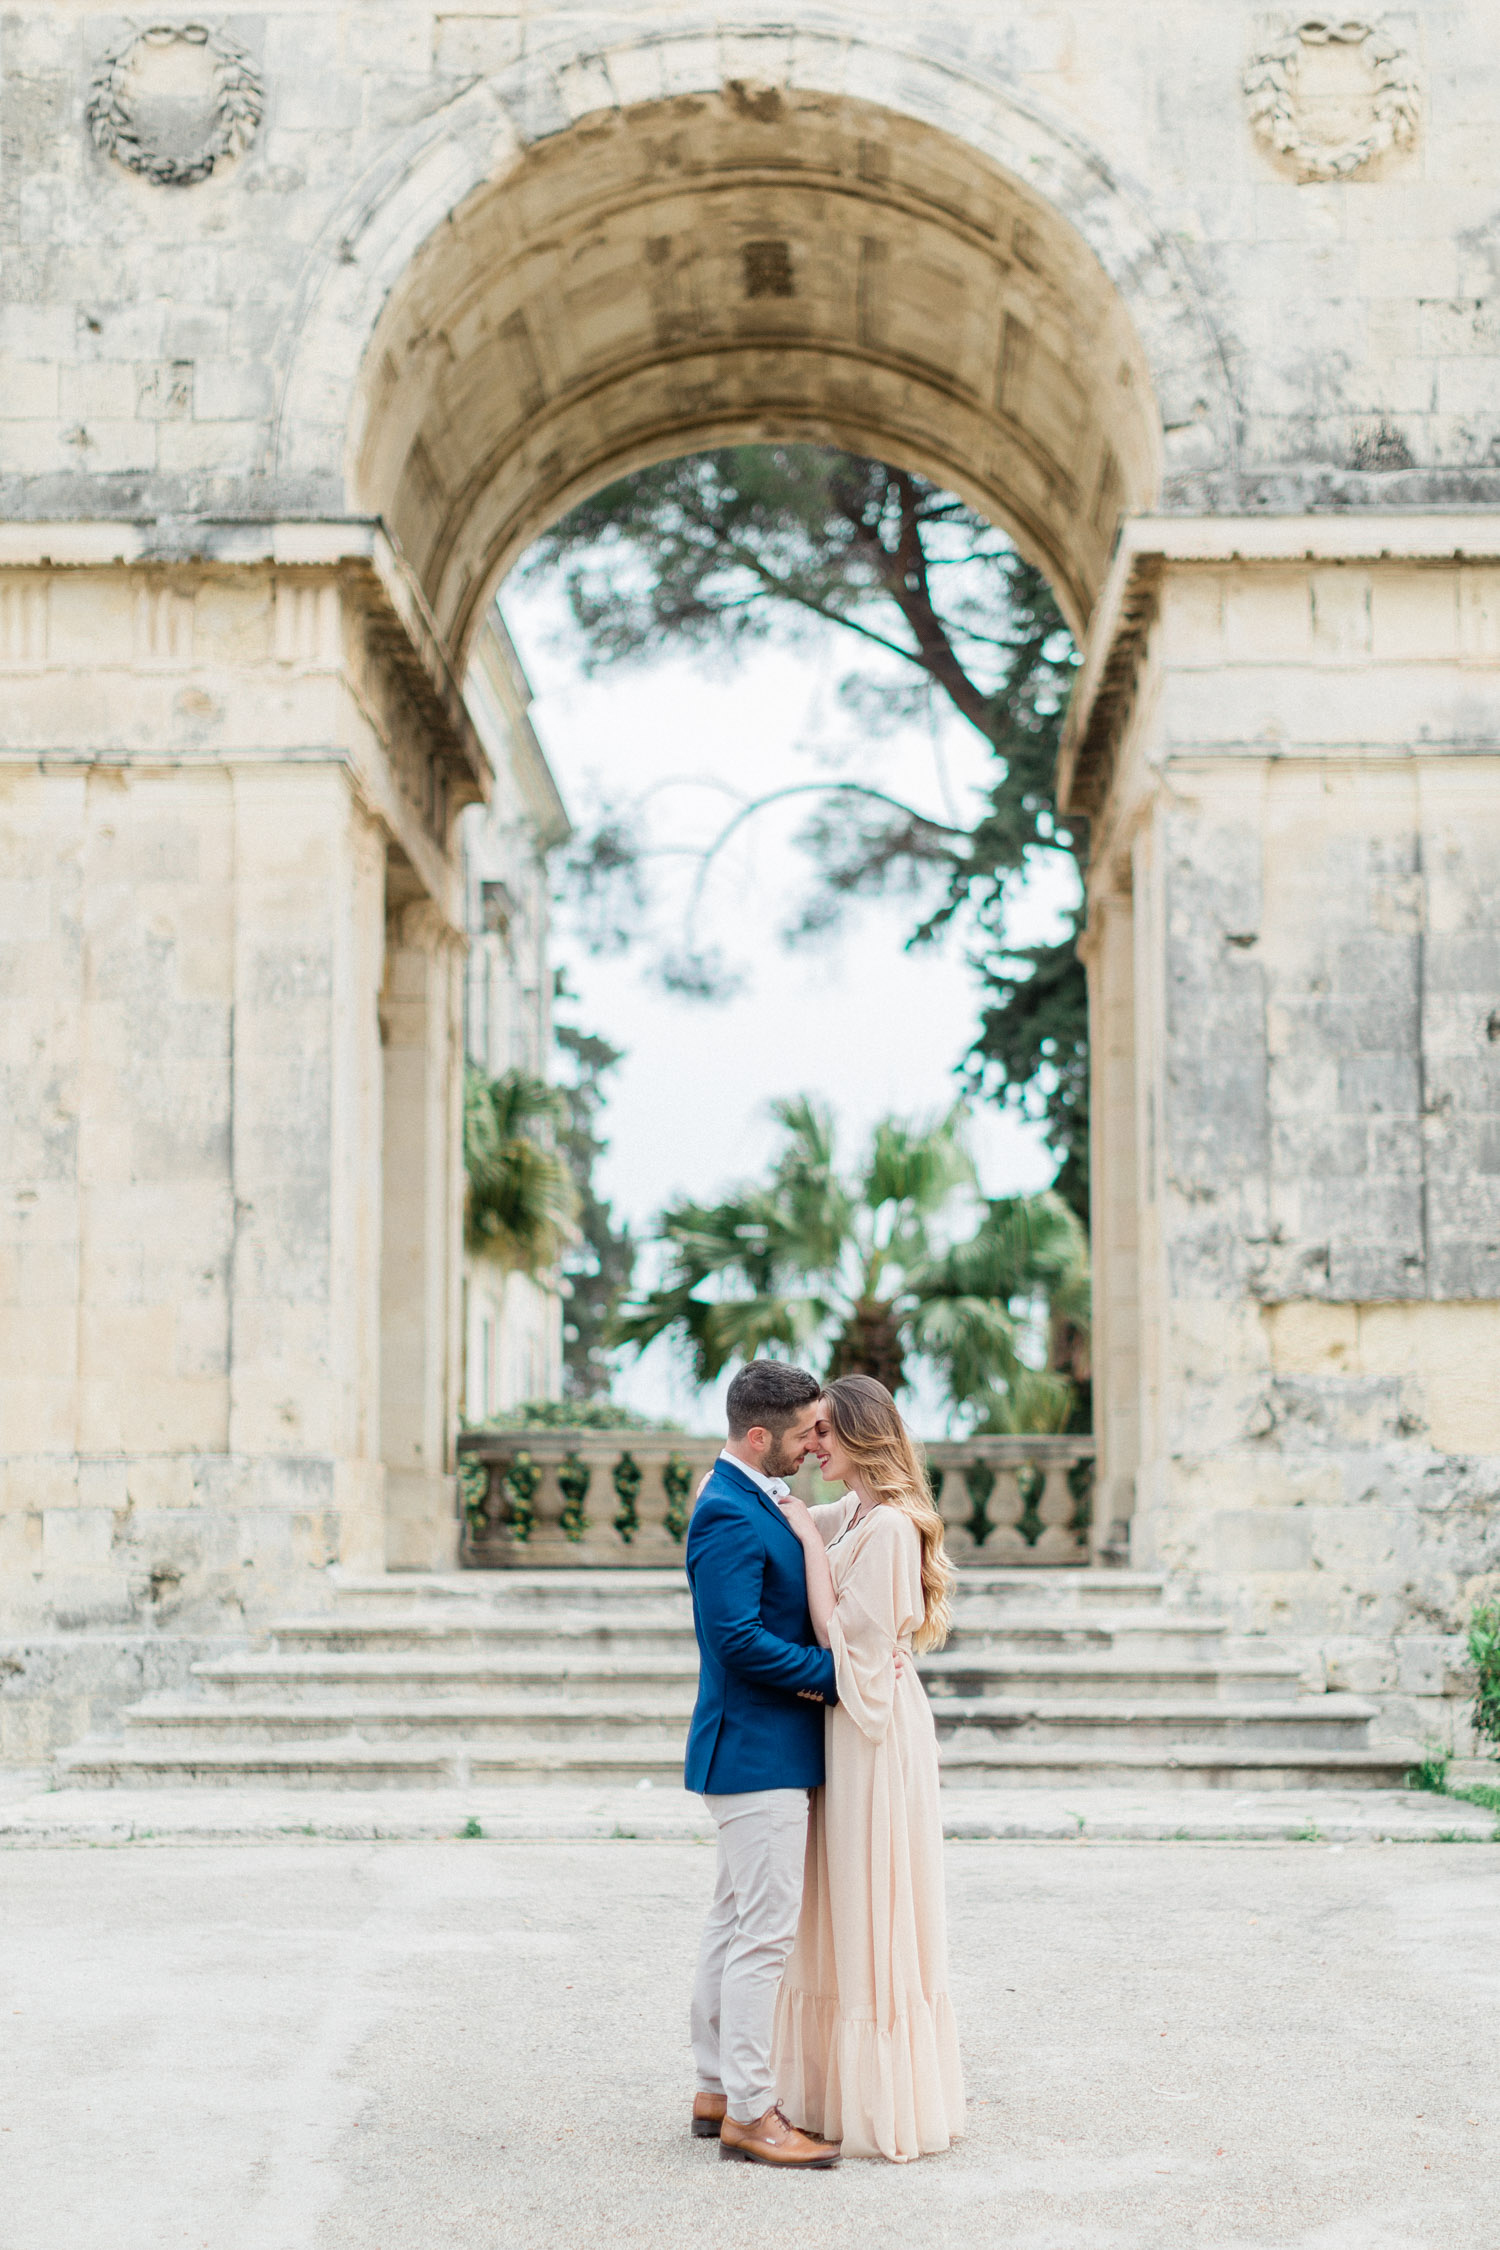 fine art engagement shooting at the Palace of St. Michael and St. George in Corfu.